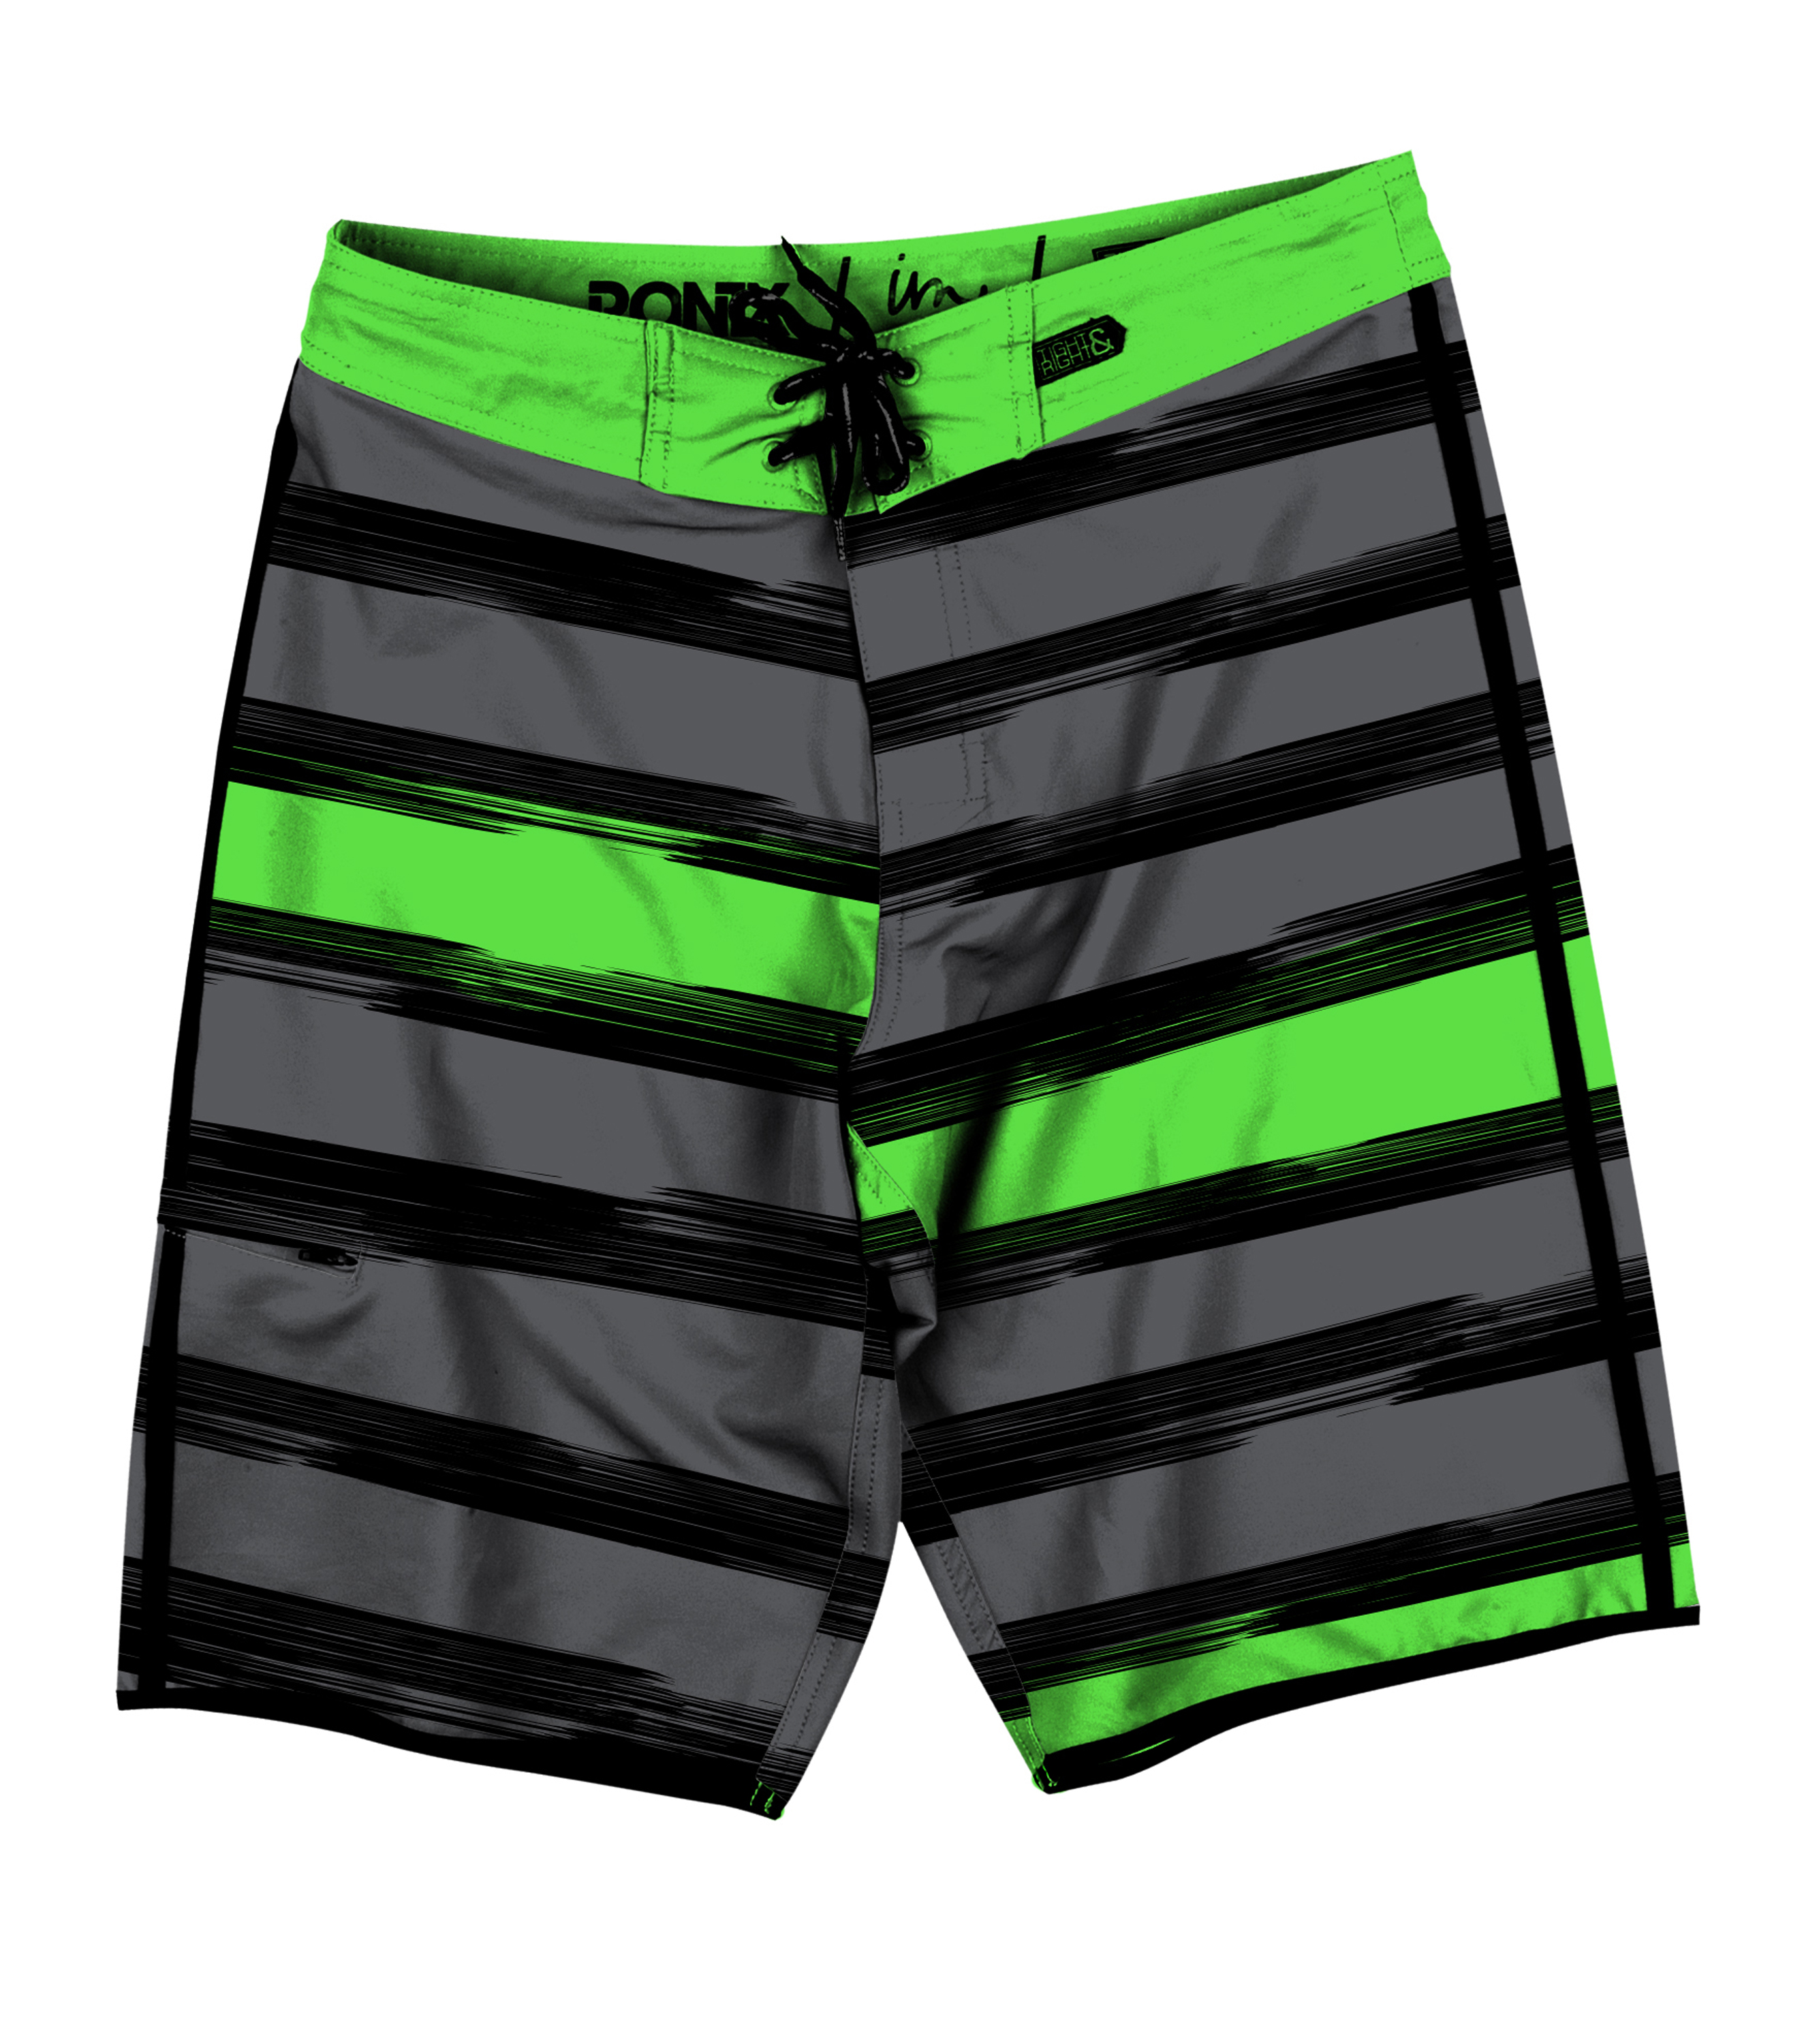 MARIANO'S STRIPES - TIGHT & RIGHT BOARDSHORT RONIX 2017